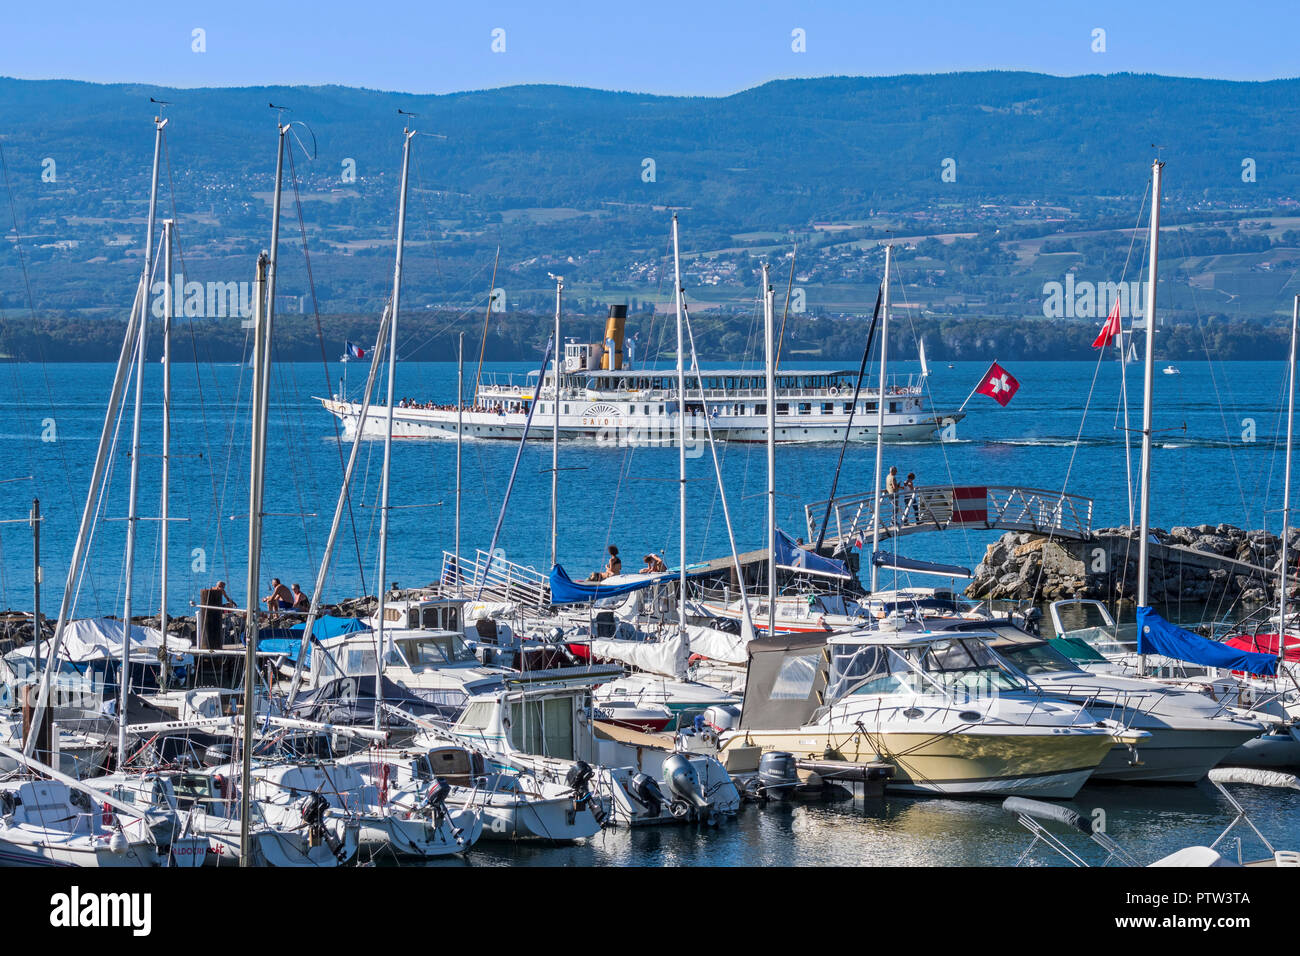 Swiss historic Belle Epoque paddle steamboat Savoie and sailing boats in the marina at Yvoire along Lake Geneva / lac Léman, Haute-Savoie, France - Stock Image